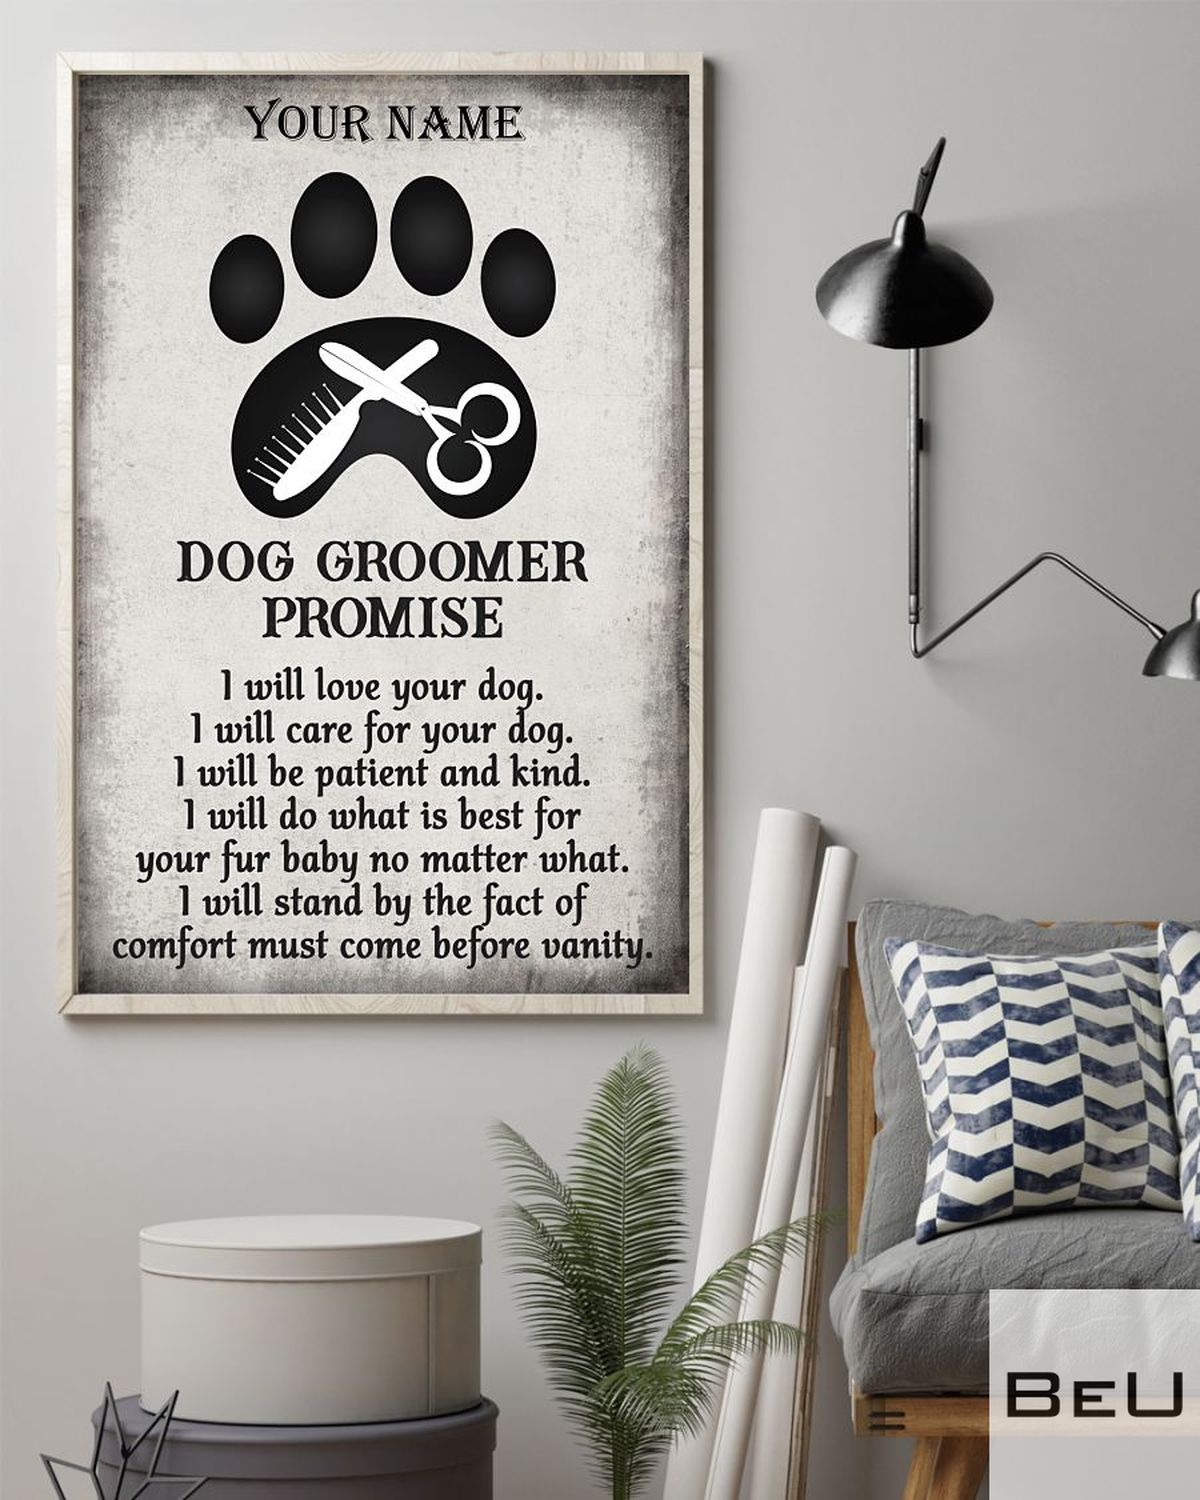 Personalized Dog Groomer Promise I Will Love Your Dog Posterz